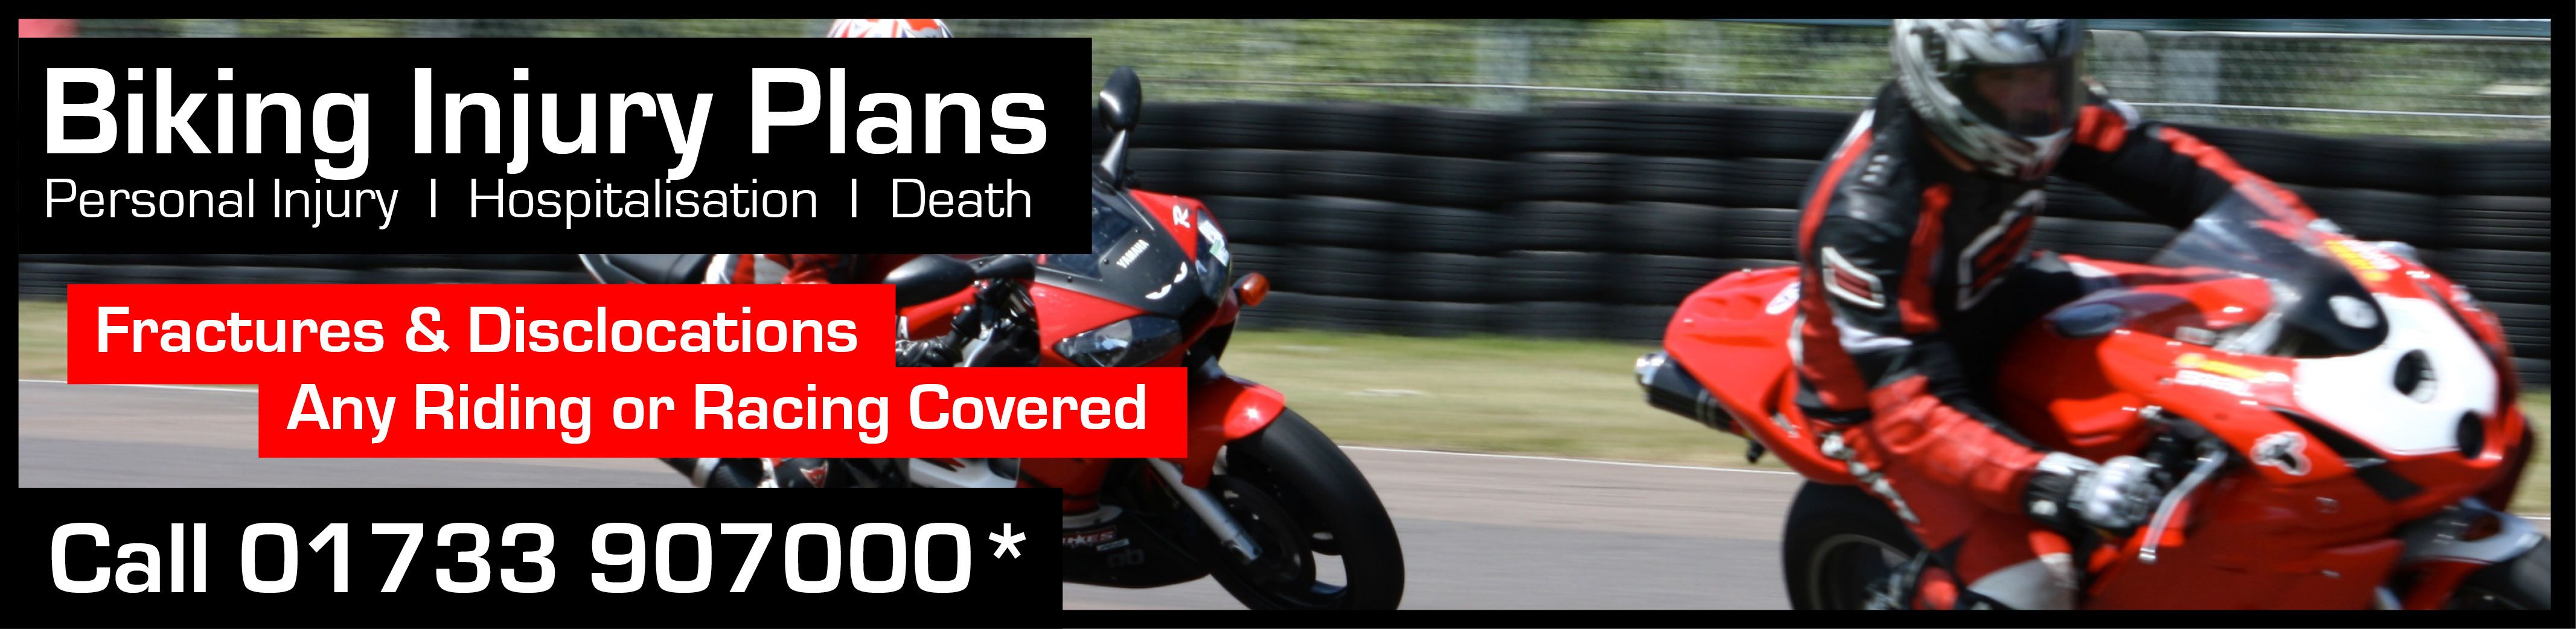 Motorcycle Sports Injury Insurance